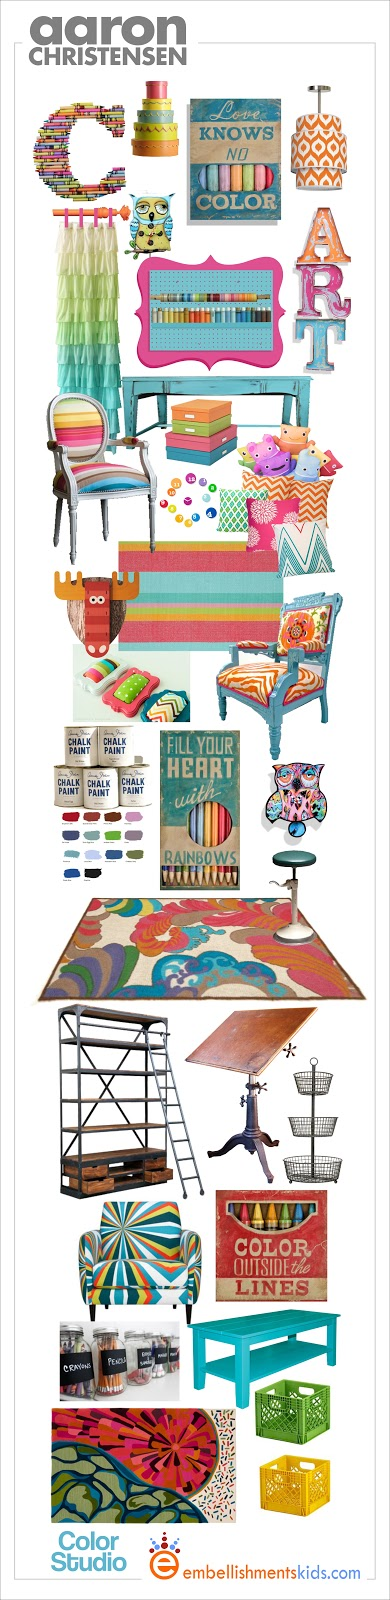 Craft Room Colorful Mood Board Decor Ideas Aaron Christensen